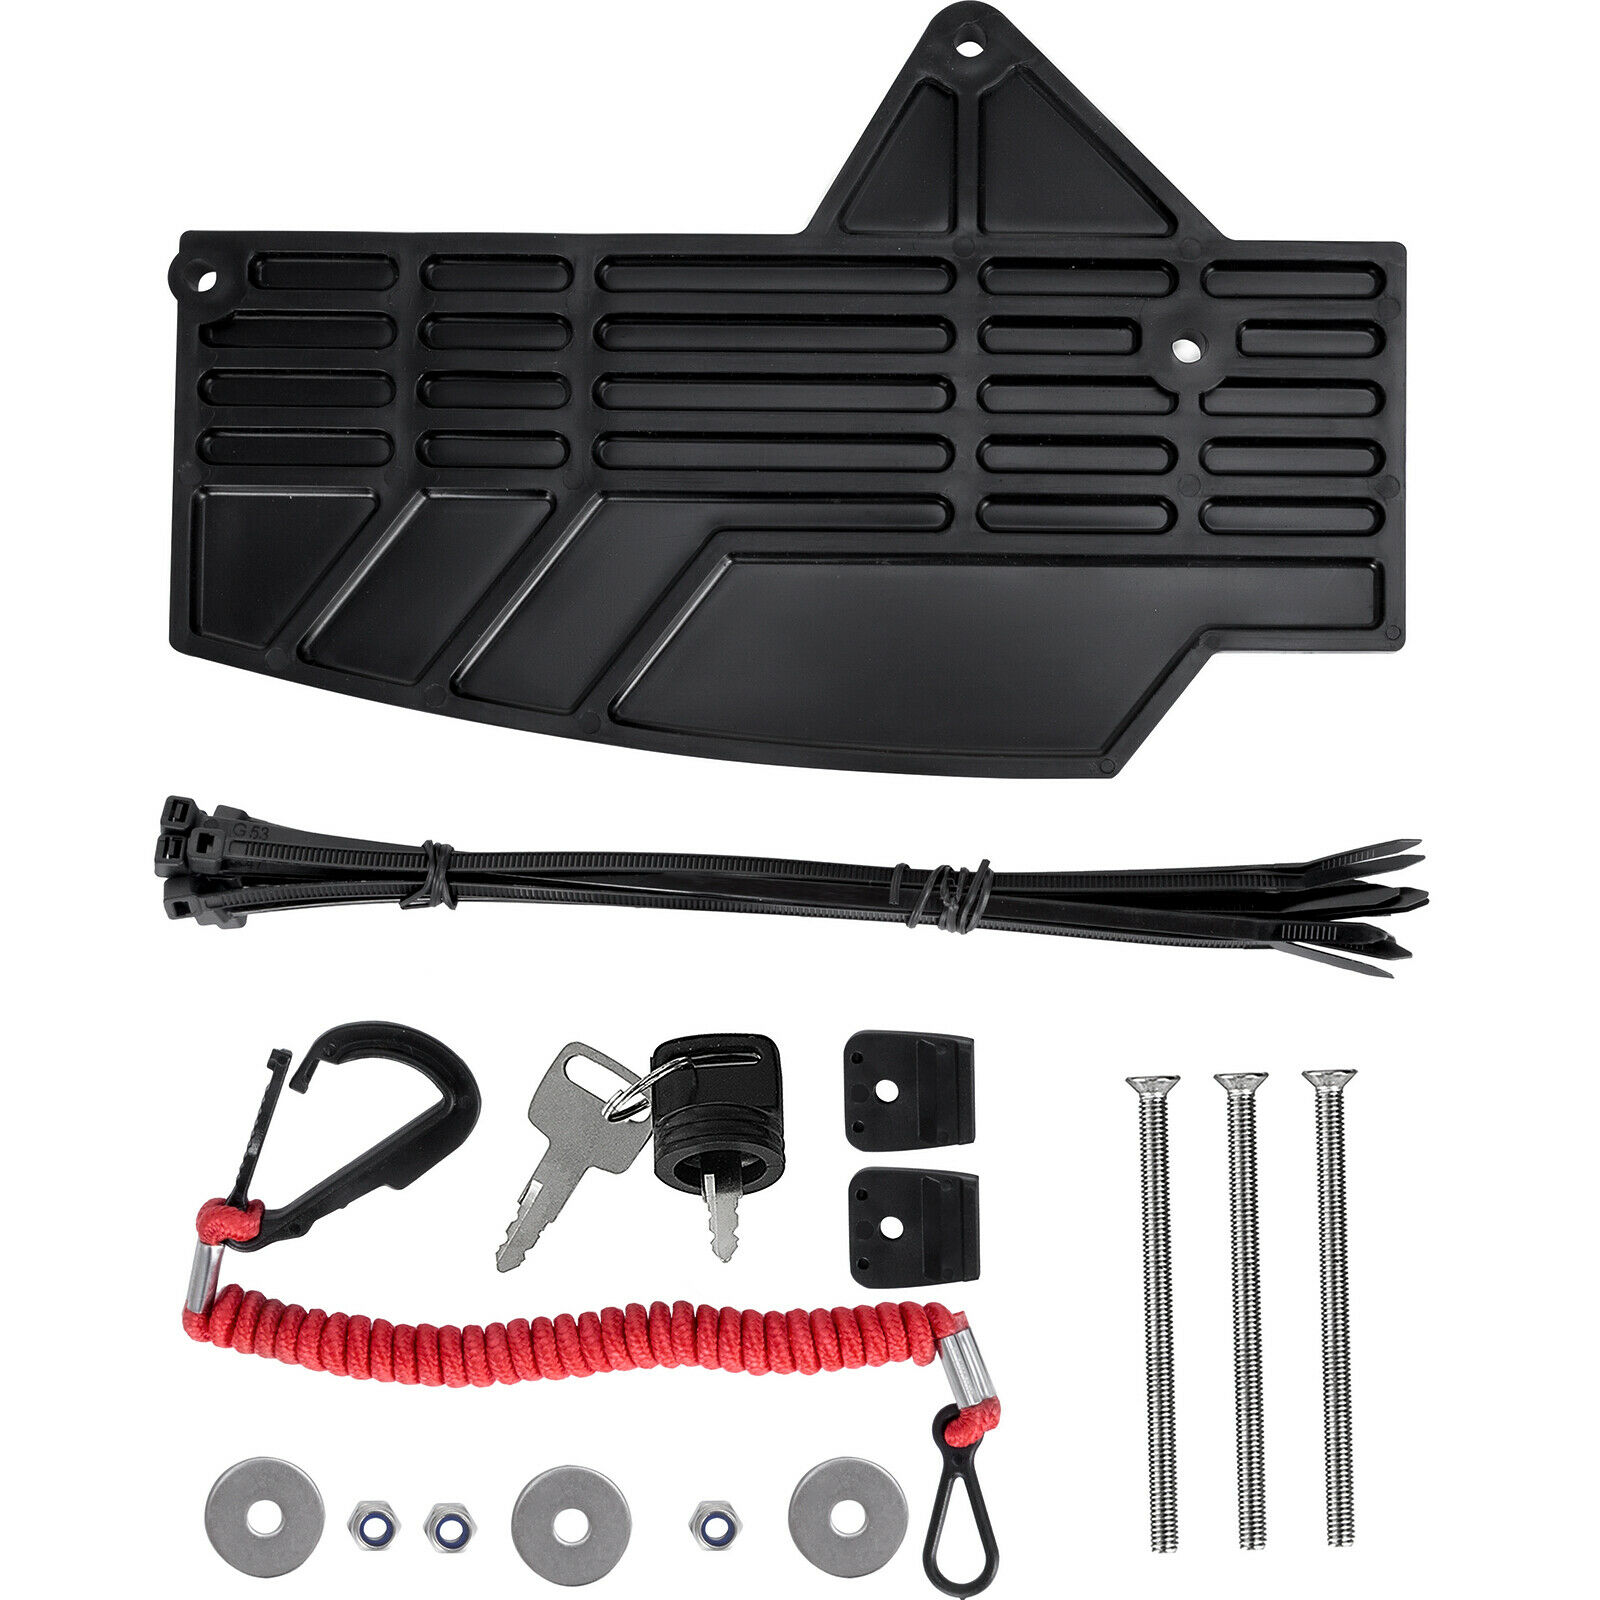 Remote Control Box for Mercury Outboard 881170A15 Side Mount Trim & Tilt 8 Pin enlarge